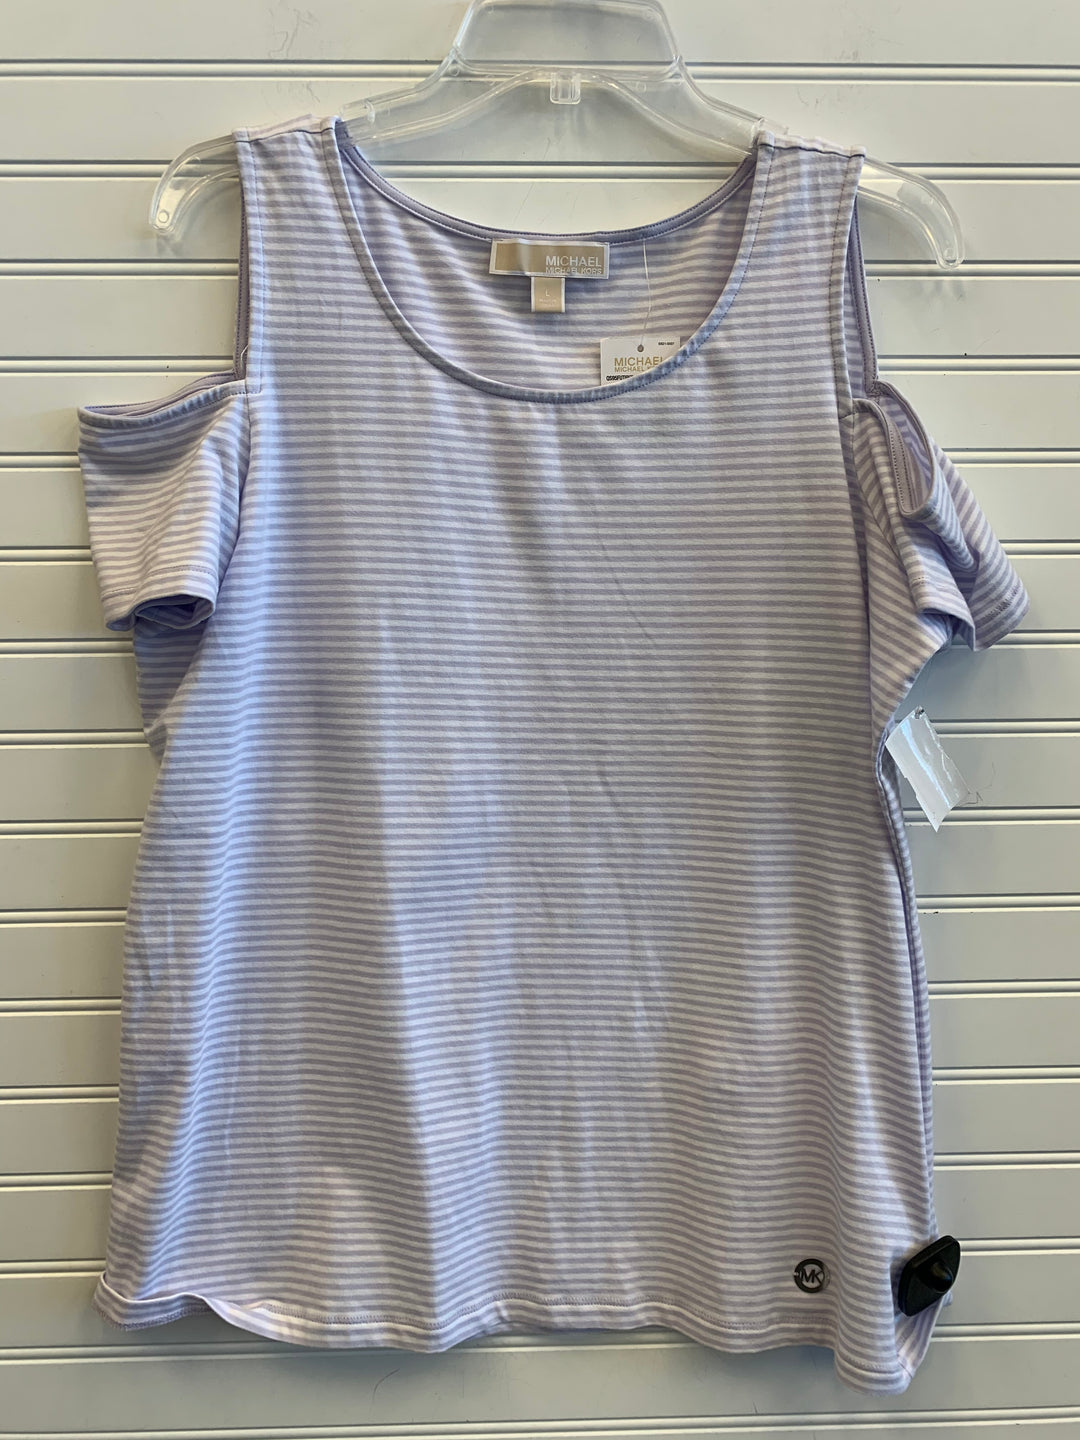 Primary Photo - BRAND: MICHAEL BY MICHAEL KORS <BR>STYLE: TOP SHORT SLEEVE <BR>COLOR: STRIPED <BR>SIZE: L <BR>OTHER INFO: RETAIL $59.50 <BR>SKU: 117-117103-54635R